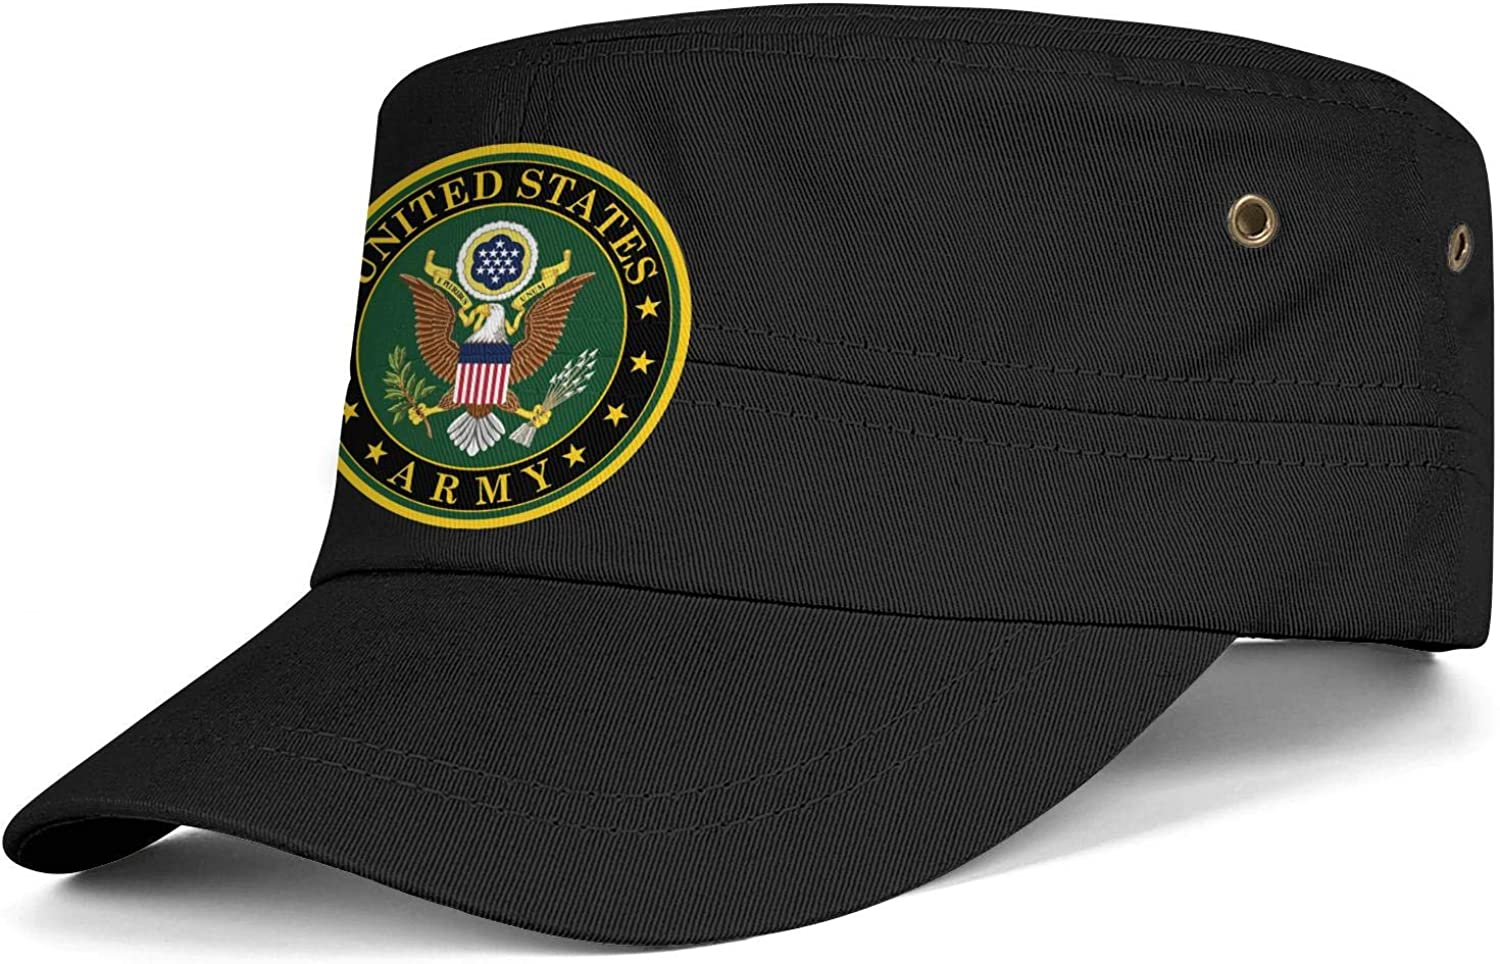 United States Army Logo Army Cap Cadet Corps Hat Military Flat Top Adjustable Baseball Cap Cotton